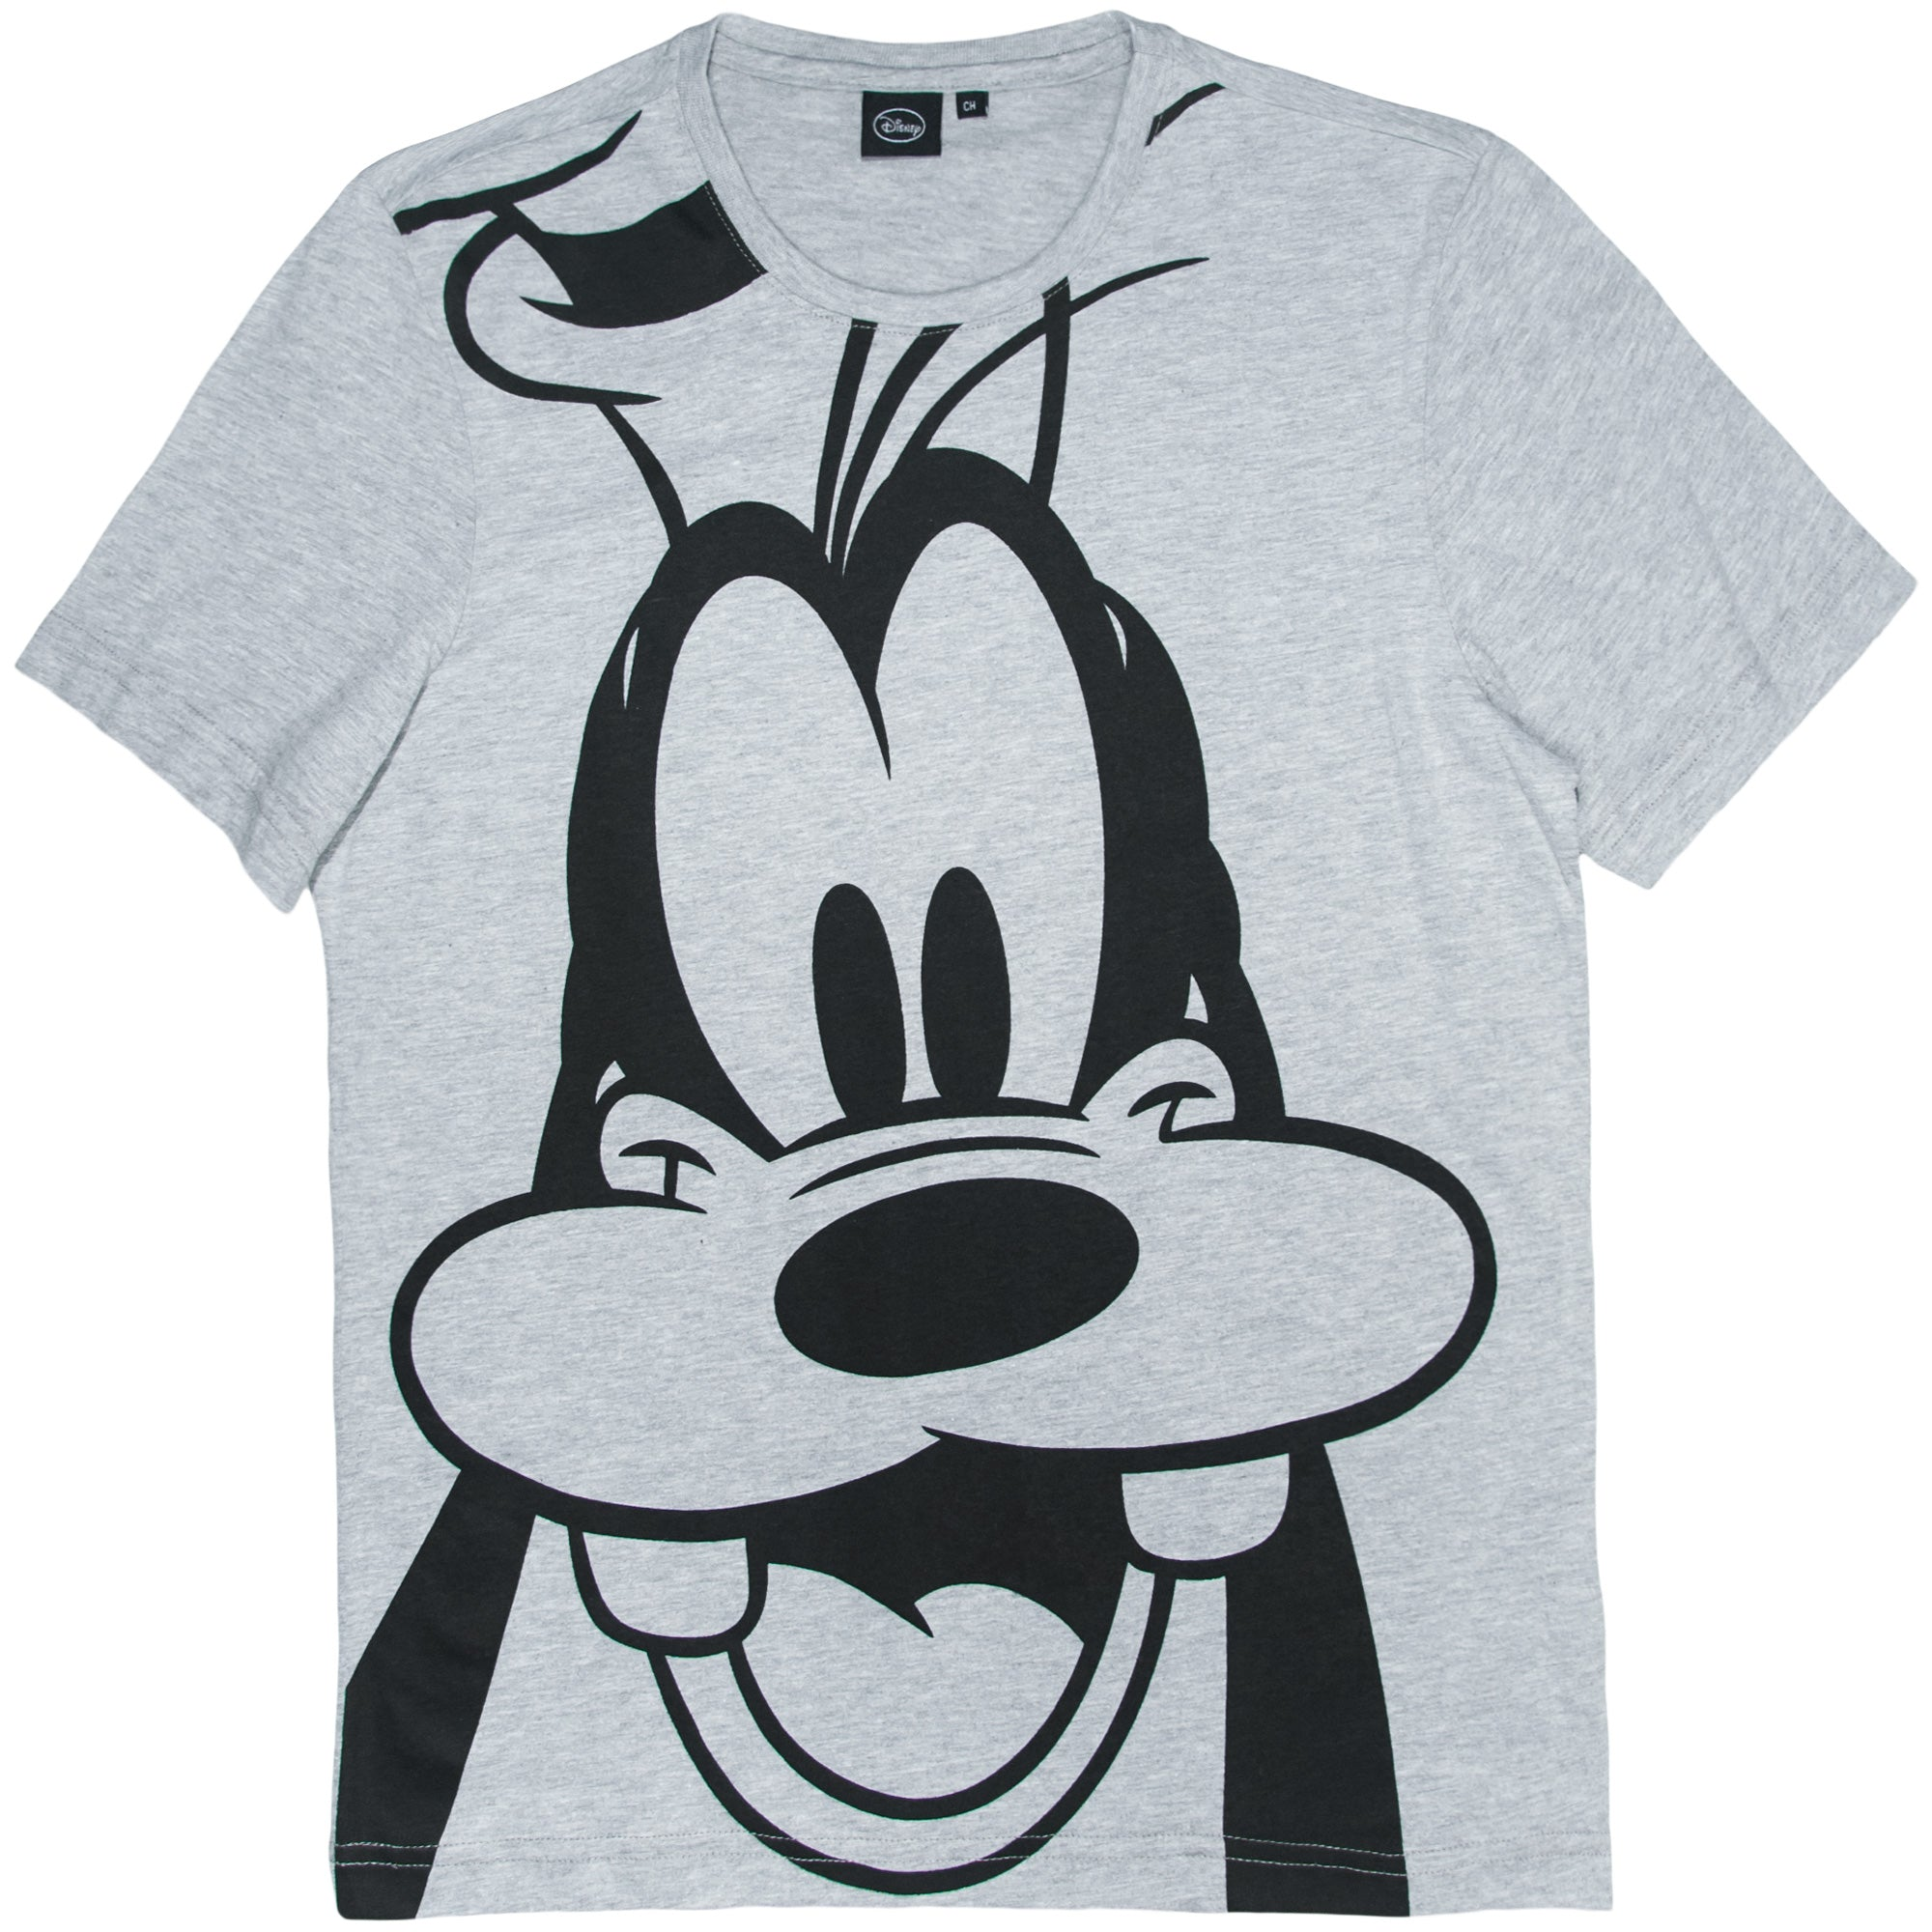 Disney Playera de Goofy color Gris Caballero